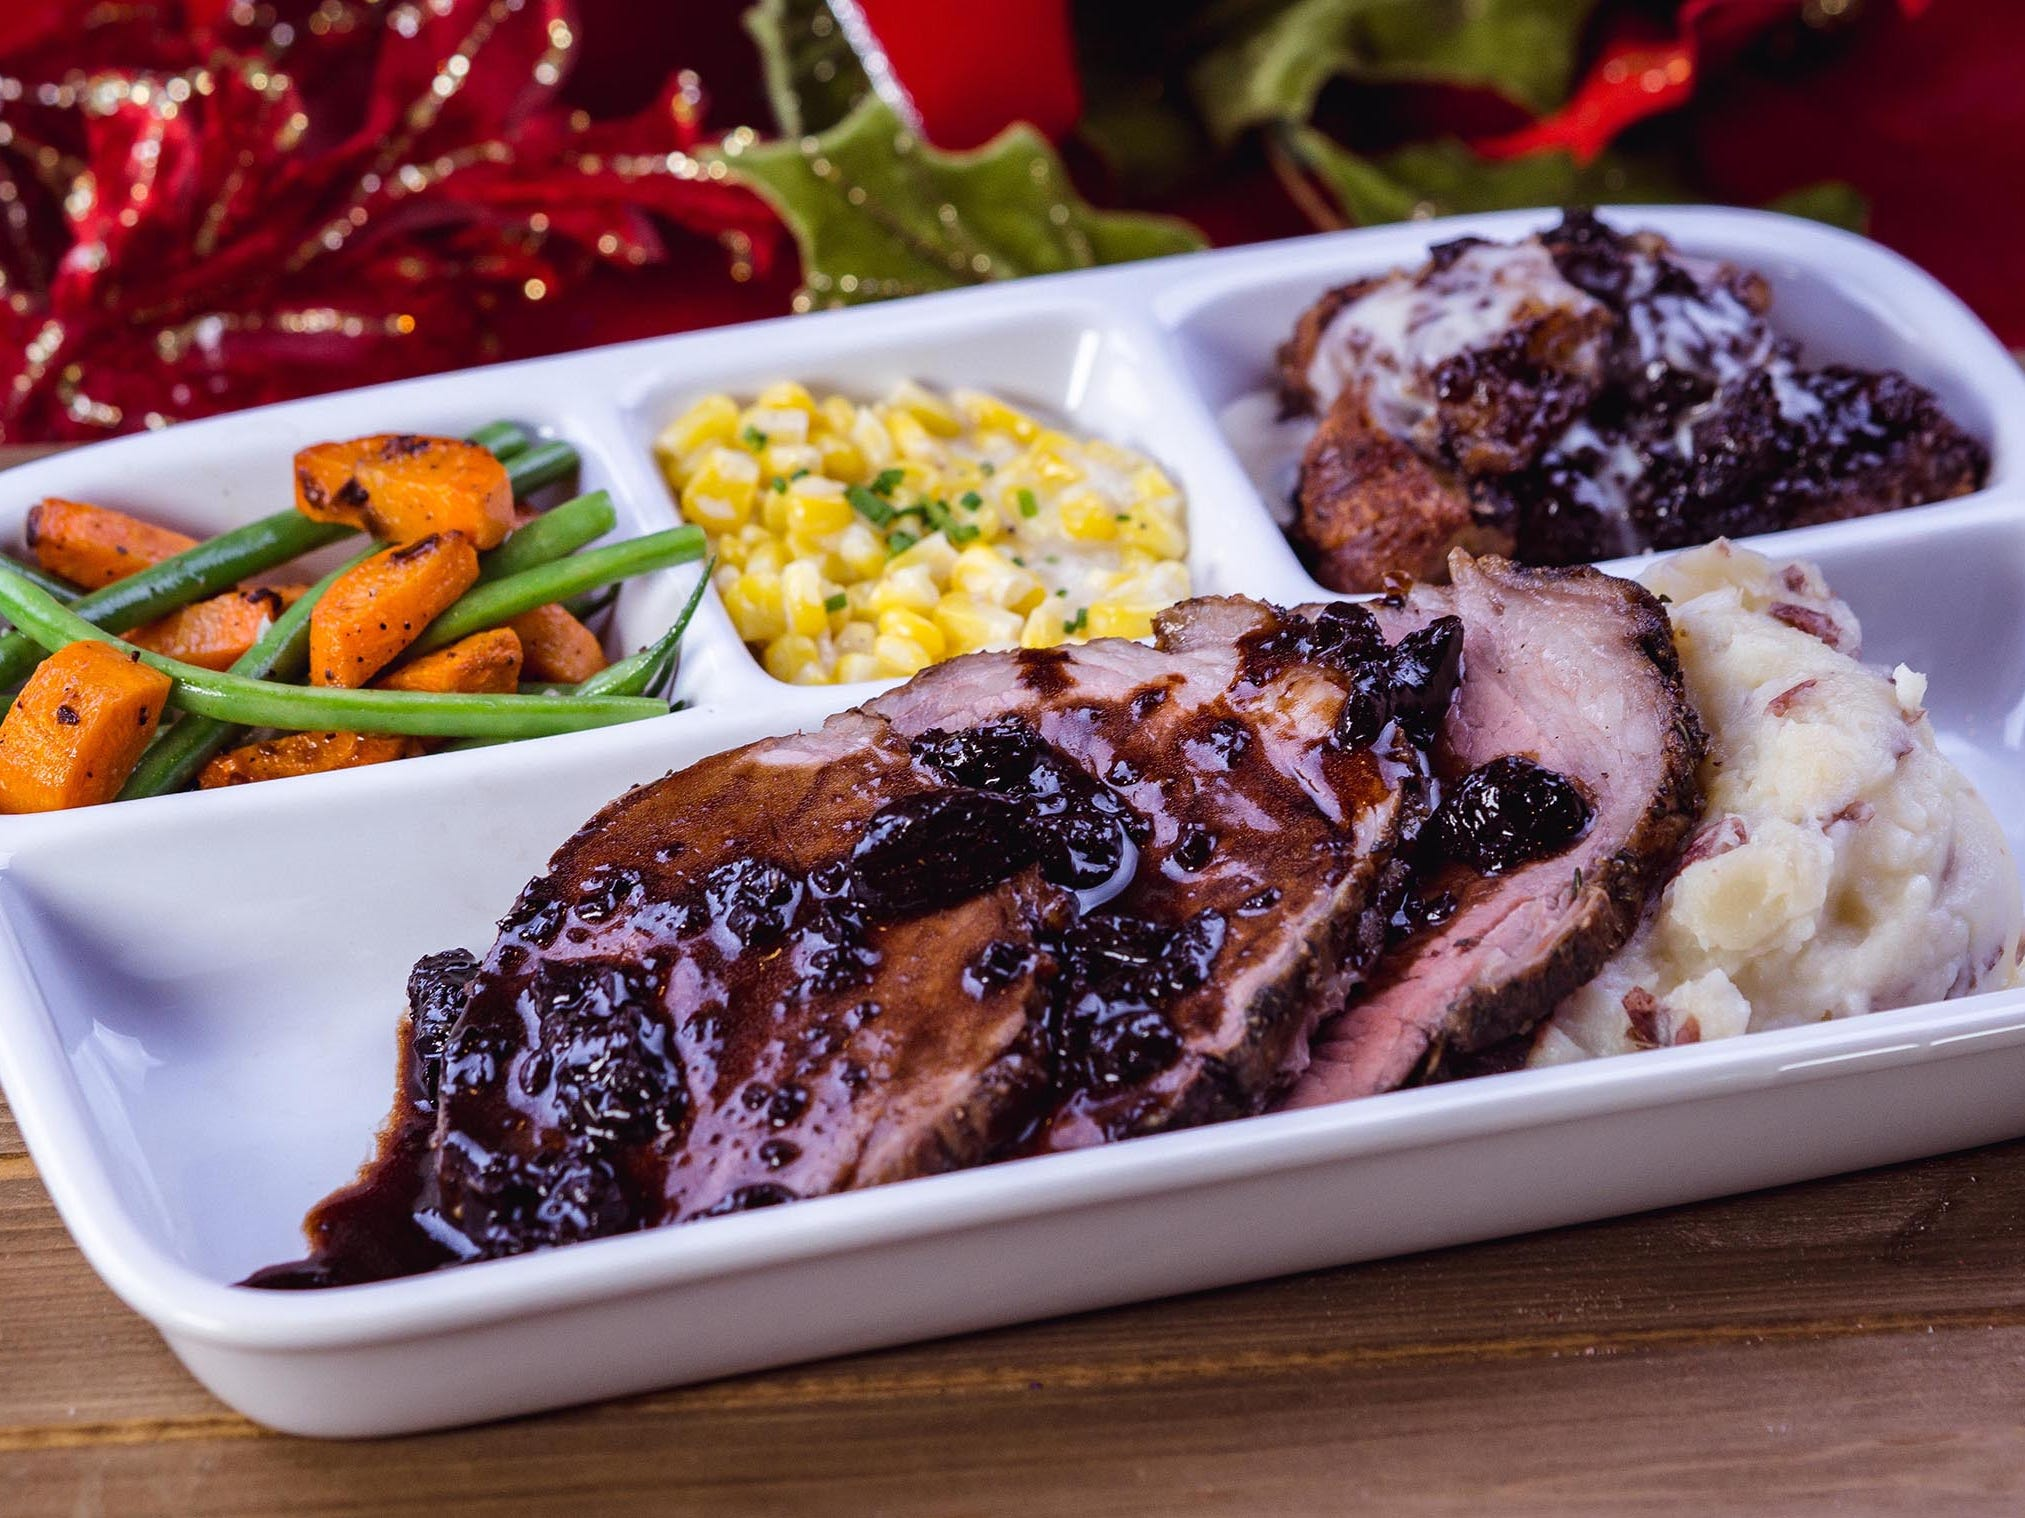 The roast beef TV dinner can be found for a limited time at Carnation Café on Main Street, U.S.A. at Disneyland park during Holidays at the Disneyland Resort.